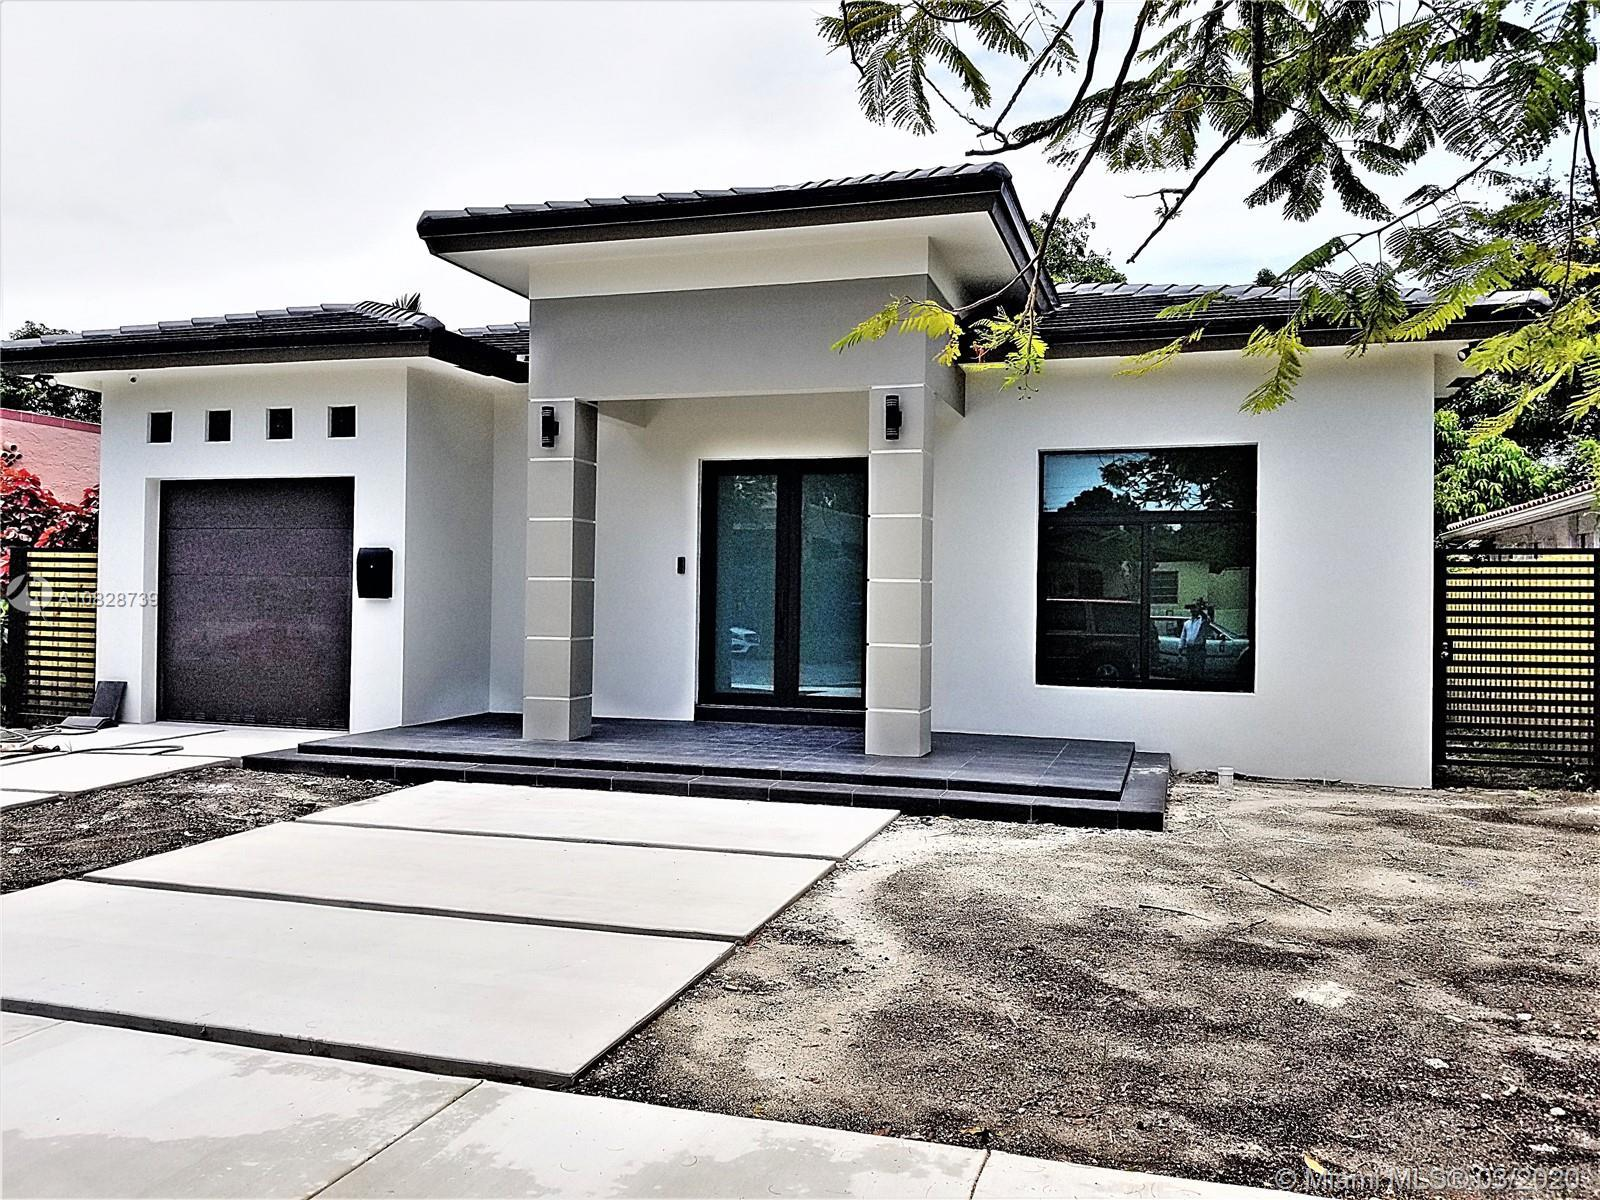 UNDER CONSTRUCTION,,,OFFERED AT PRE-CONSTRUCTION PRICE,,,BRAND NEW HOME,,,ESTIMATED COMPLETION DATE: